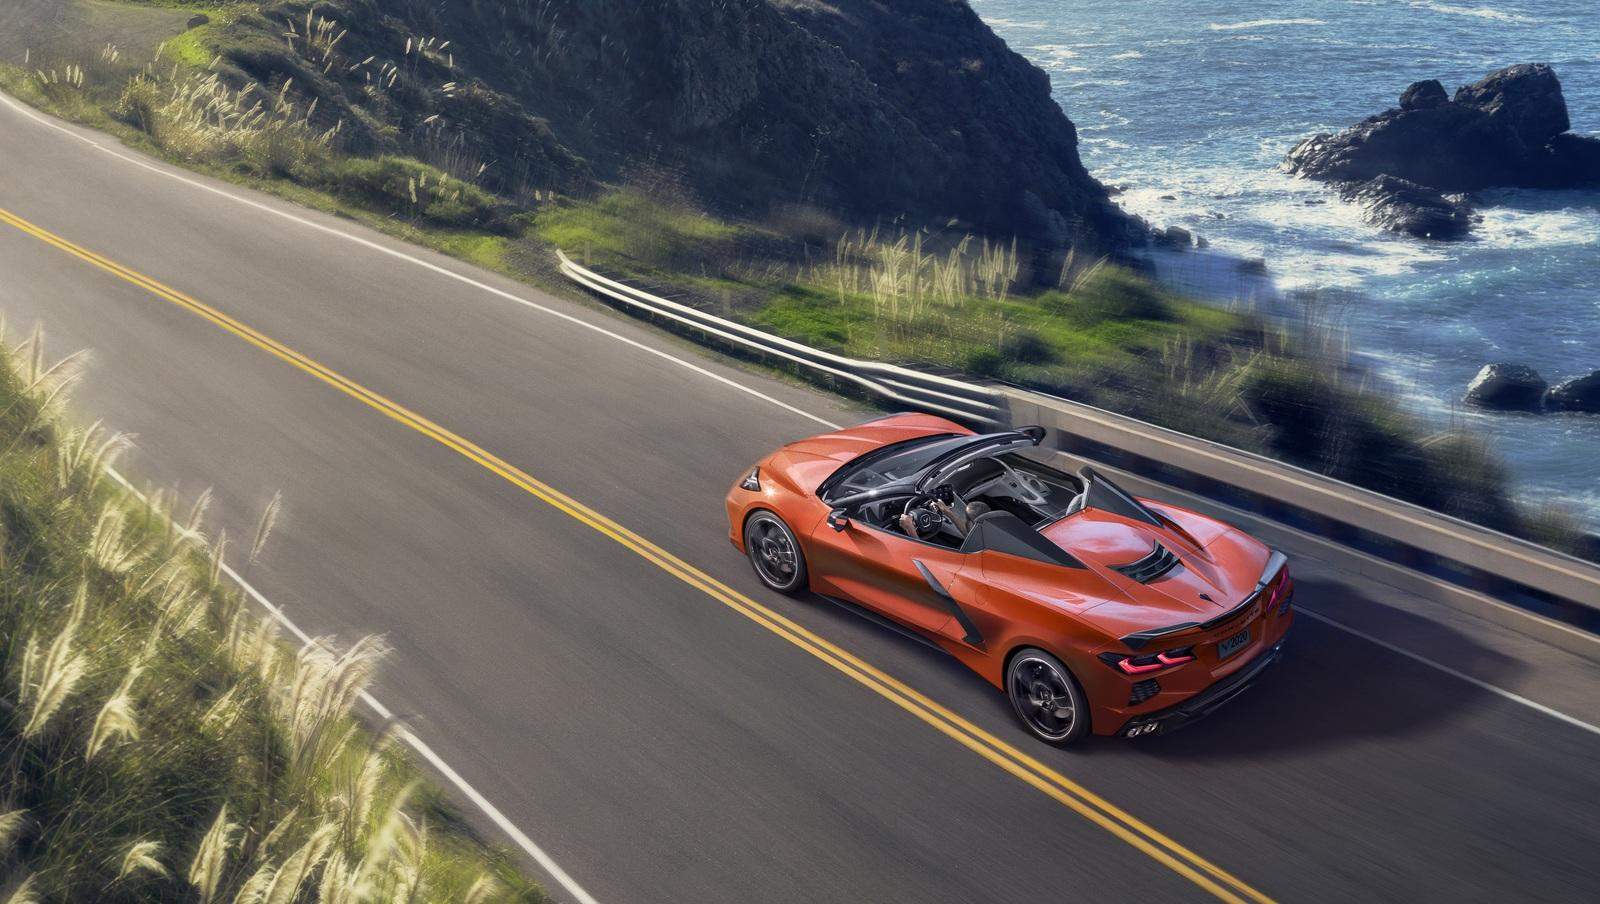 2020 Chevy C8 Corvette Convertible Gallery Pictures ...